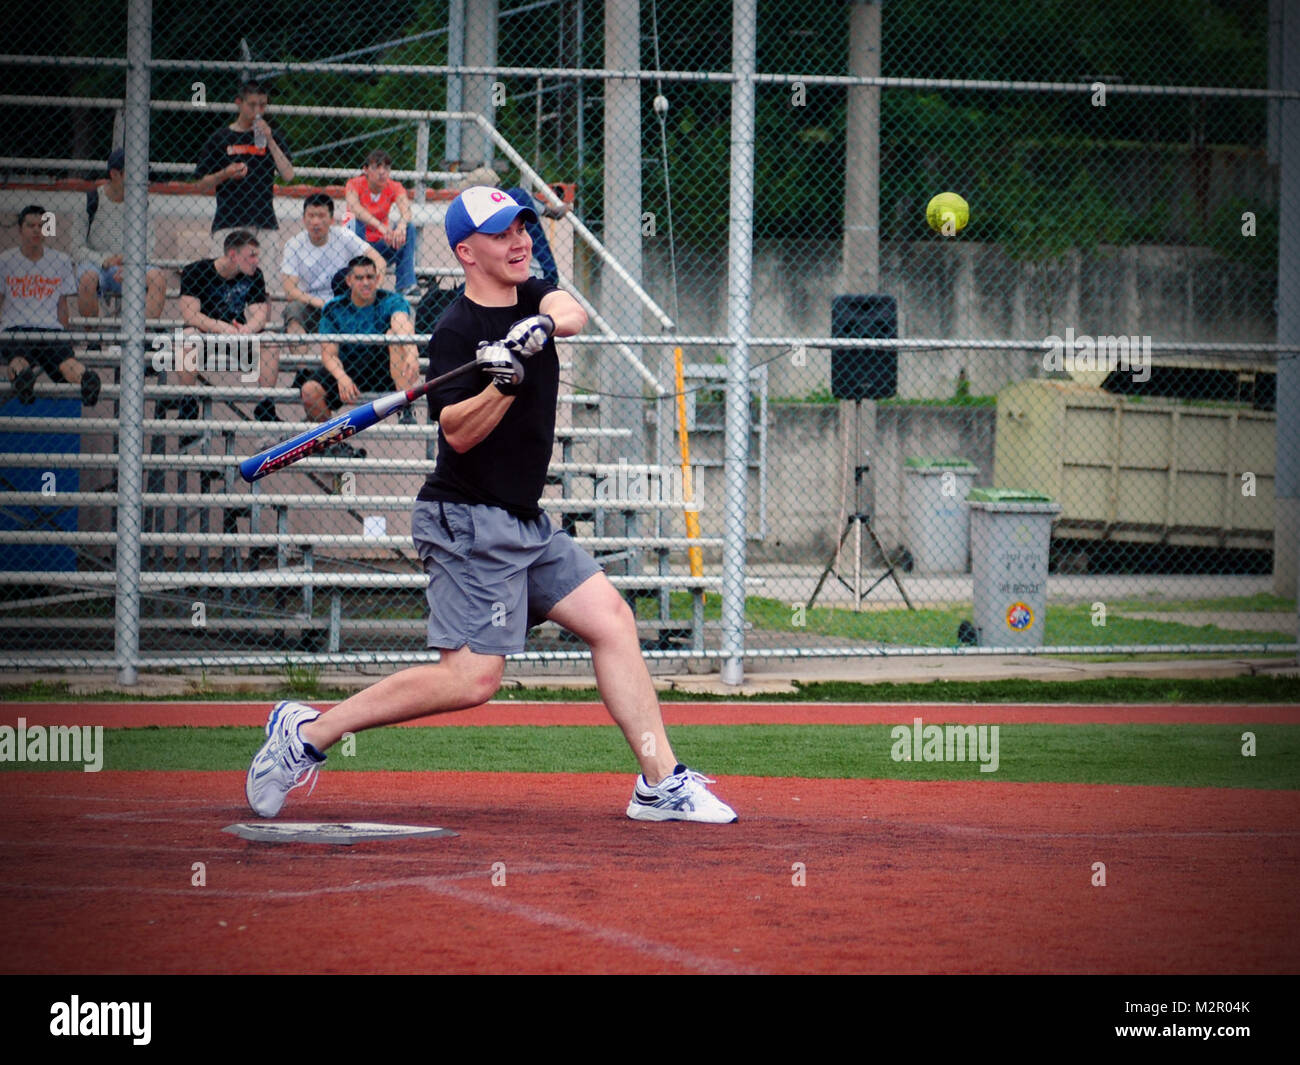 Jae Sung Stock Photos Jae Sung Stock Images Page 2 Alamy